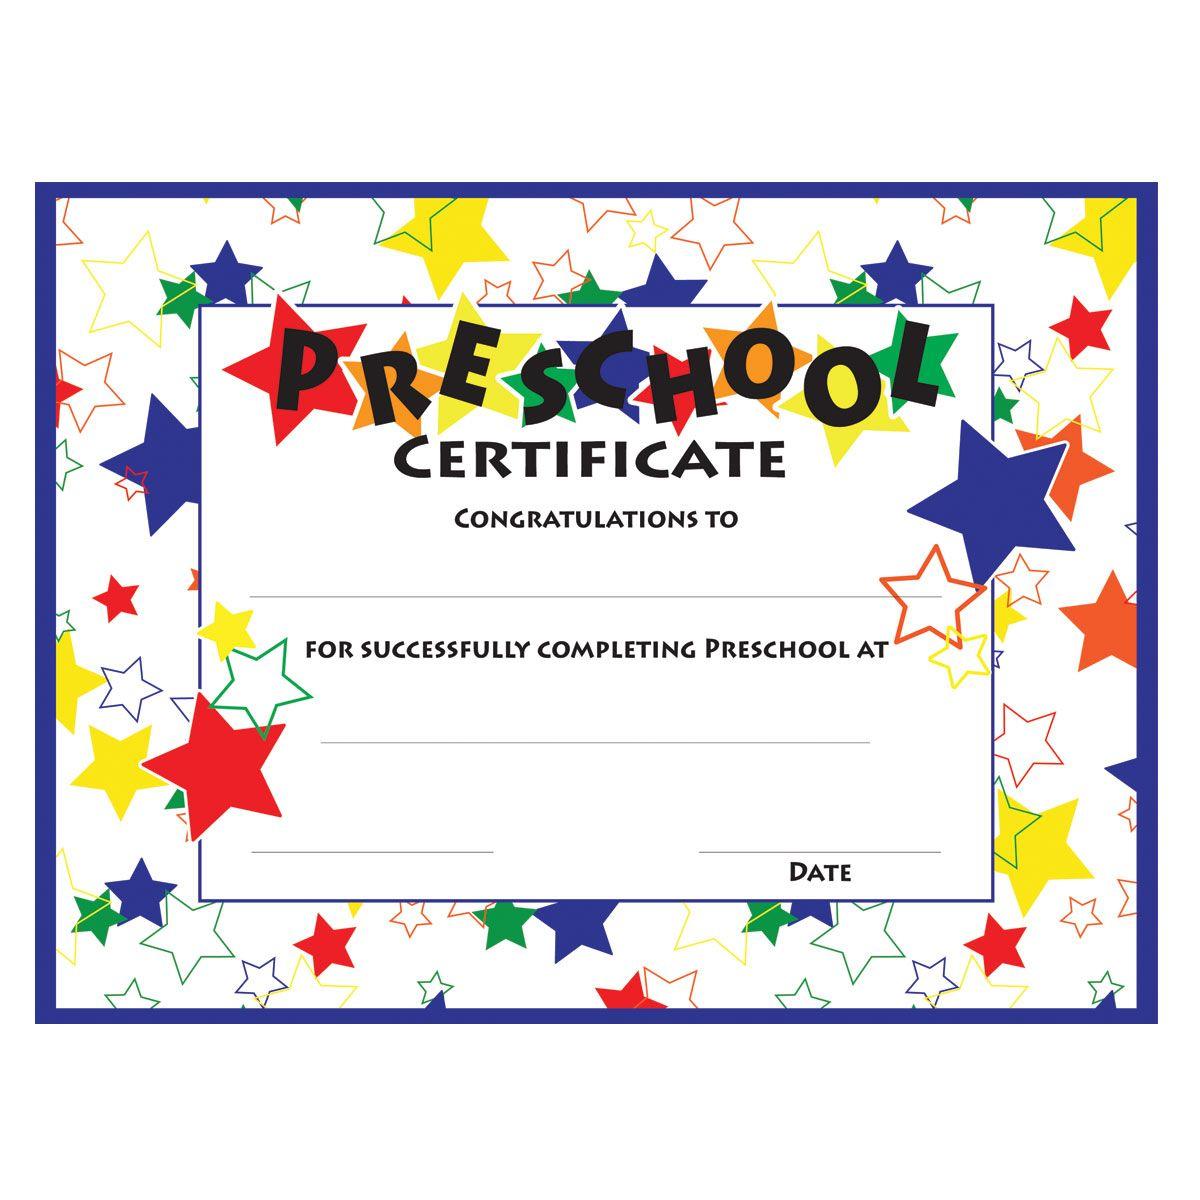 Free Printable Certificate Templates For Teachers Certificate Of Recognition Template Graduation Certificate Template Free Certificate Templates